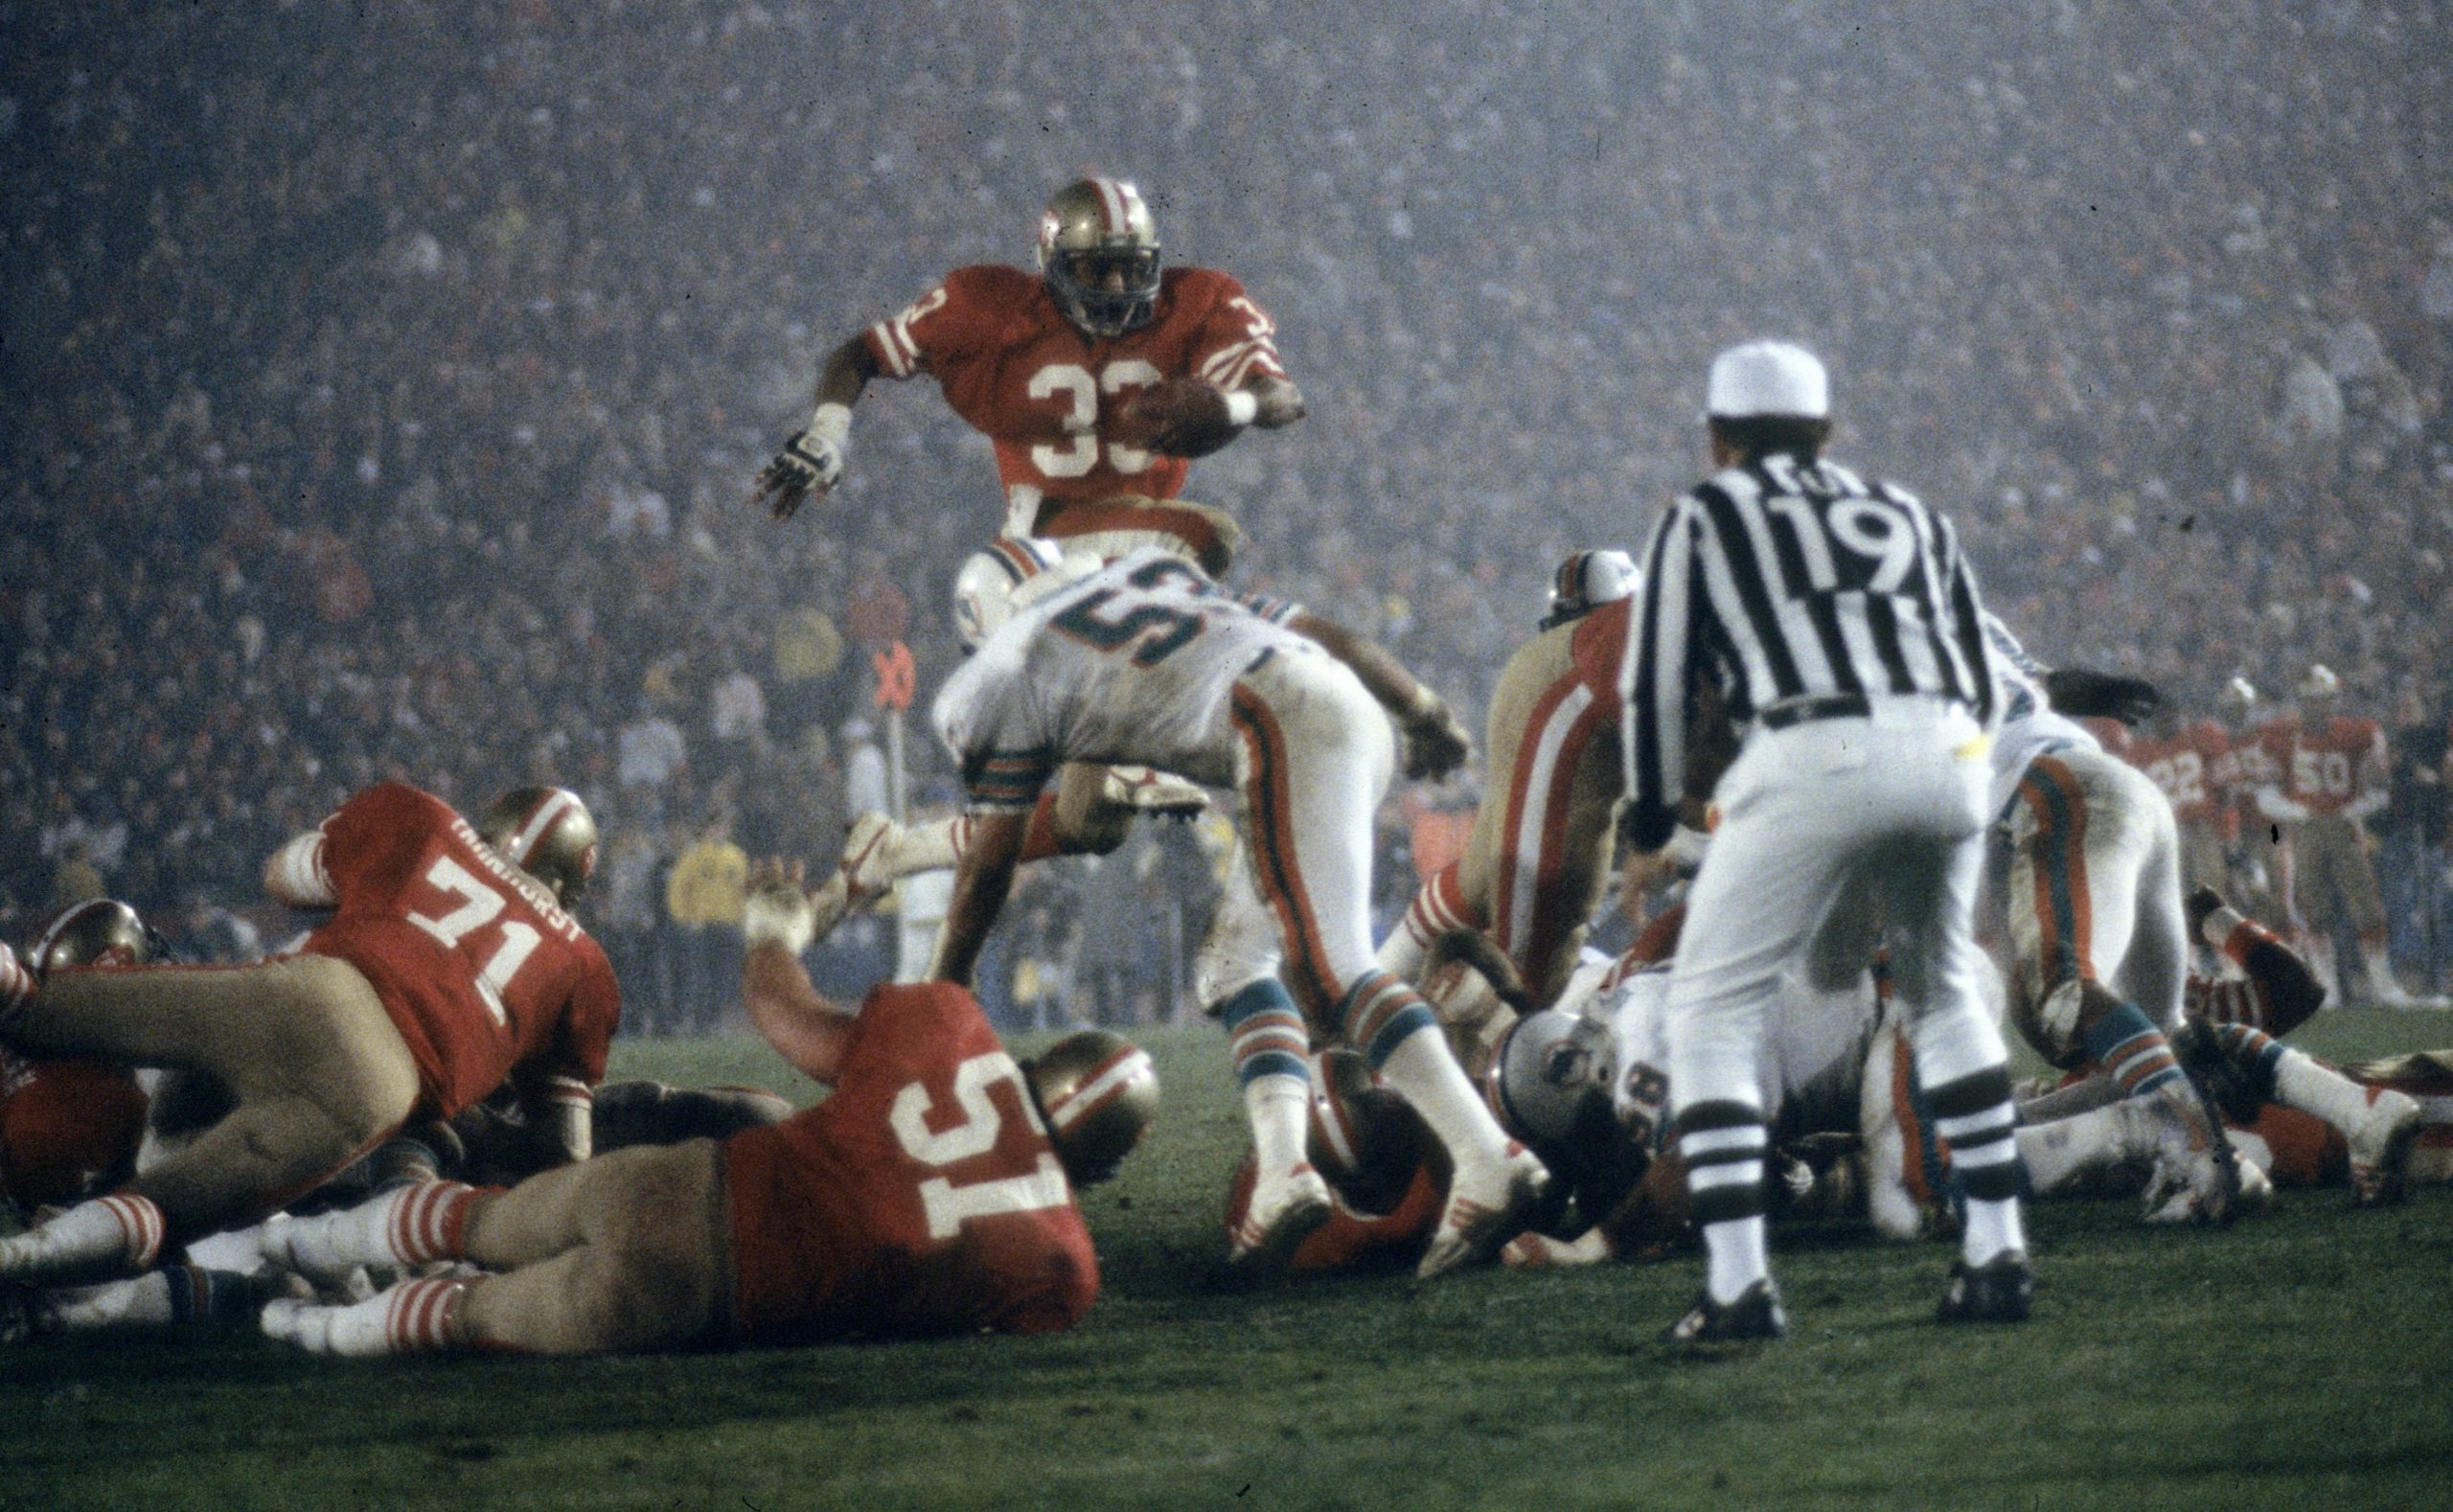 My First Super Bowl  Roger Craig for Super Bowl Played In Miami